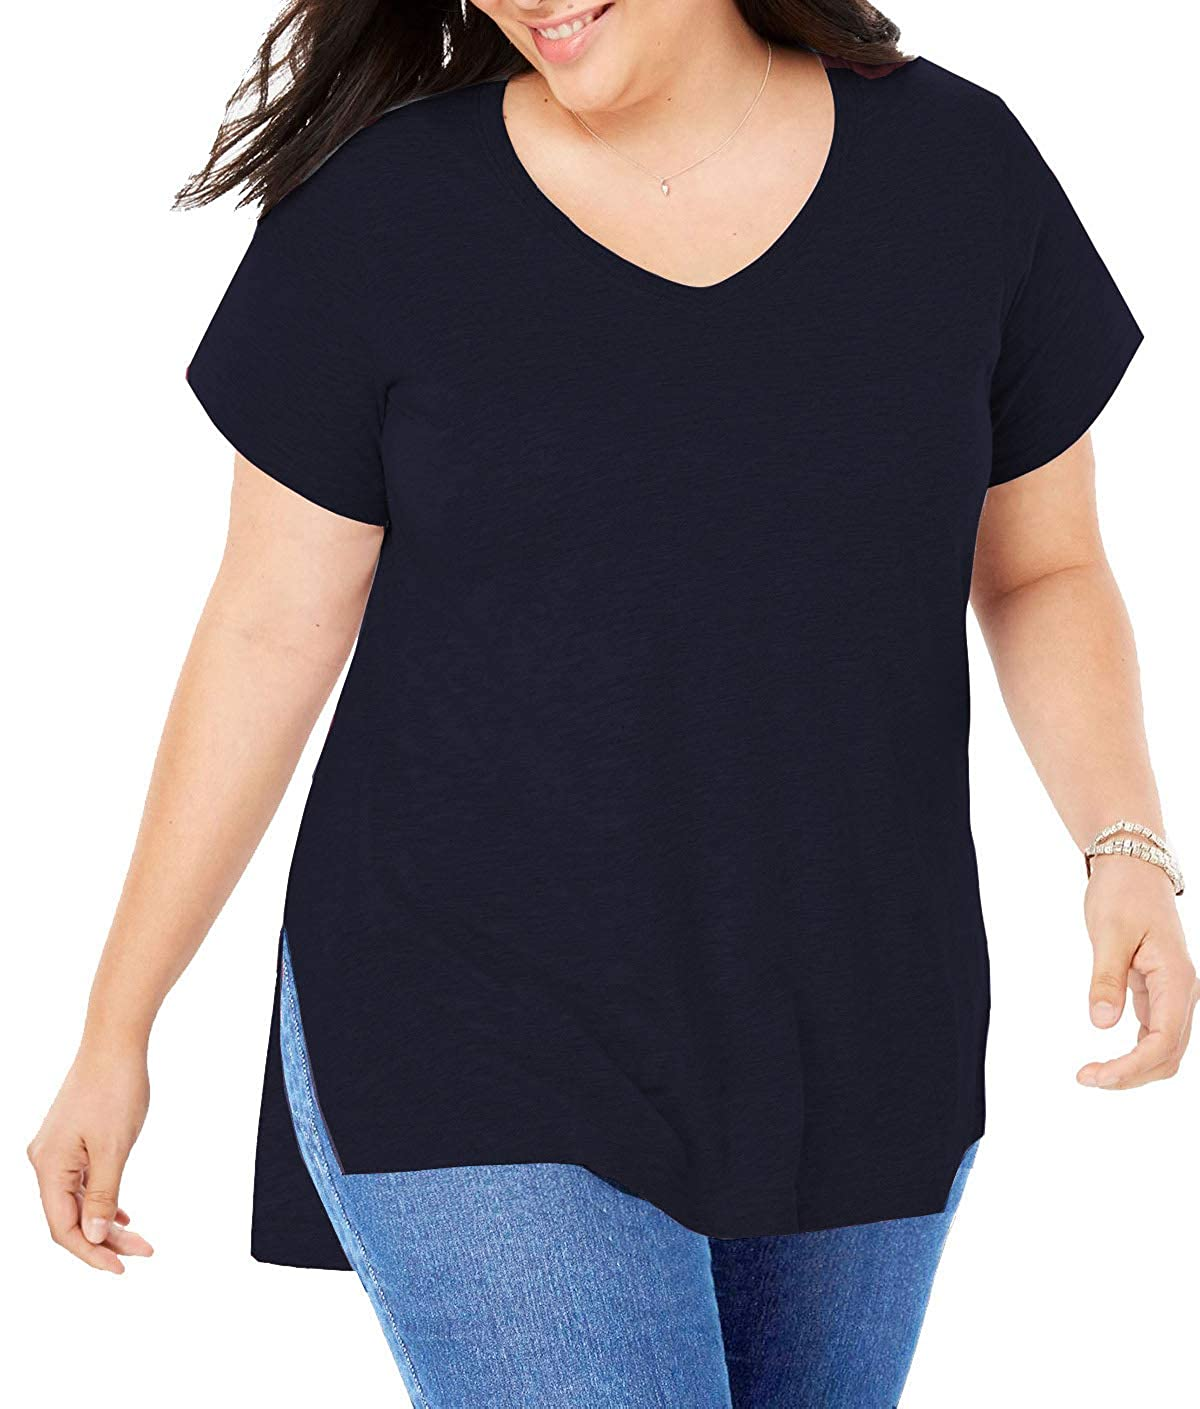 9b826aae6 Women Plus Size Short Sleeve T Shirt Basic Tee Tops High Low Loose Shirts  with Side Split at Amazon Women's Clothing store: